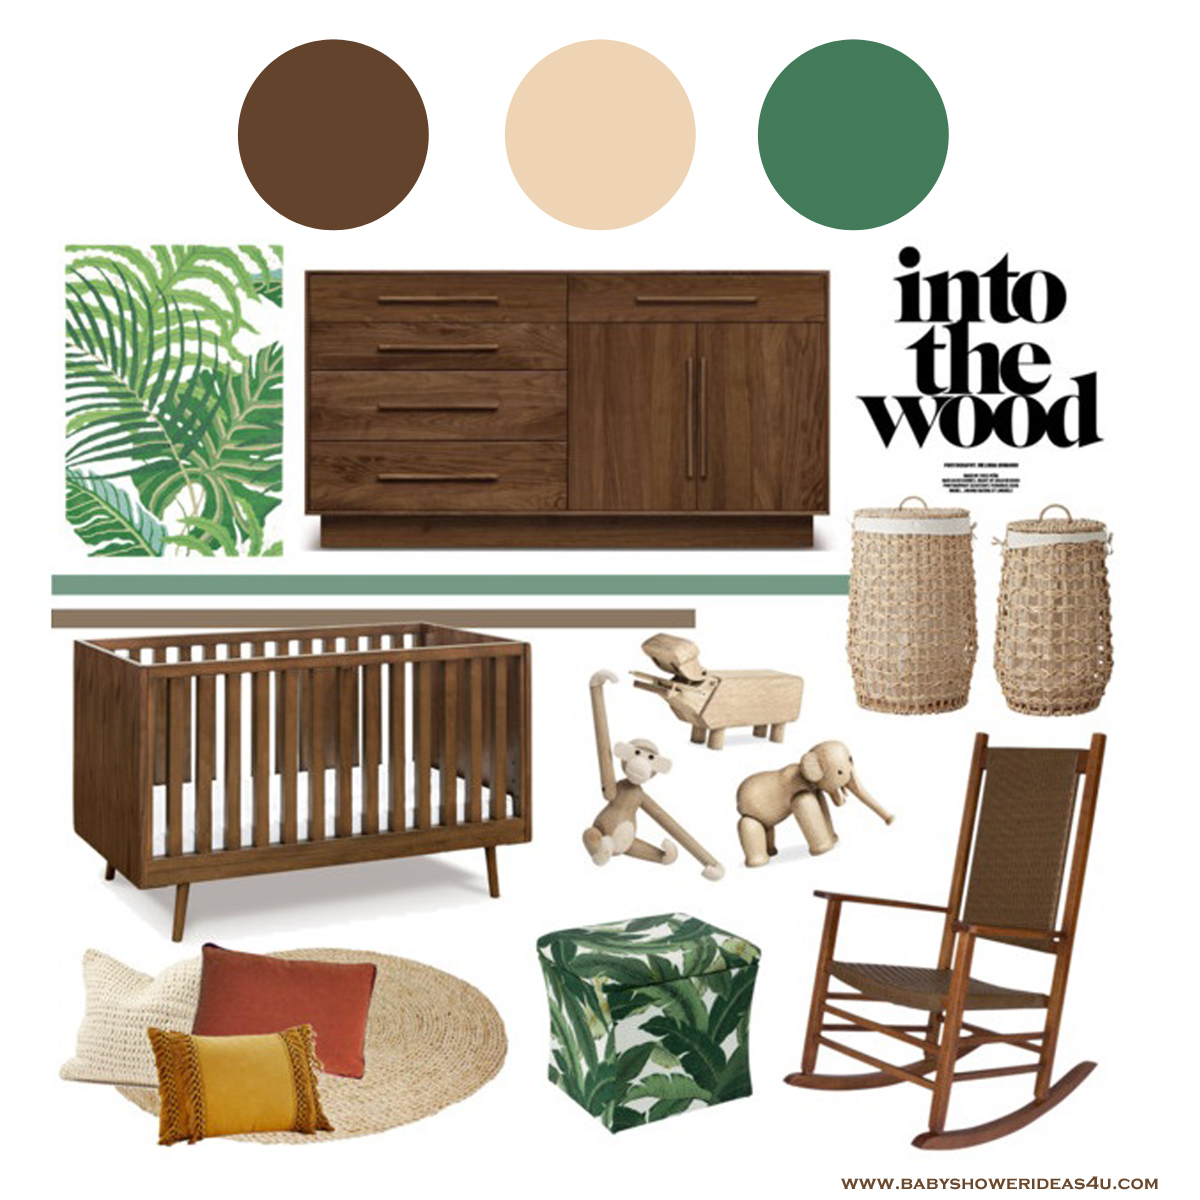 into-the-wood-baby-nursery-inspiration